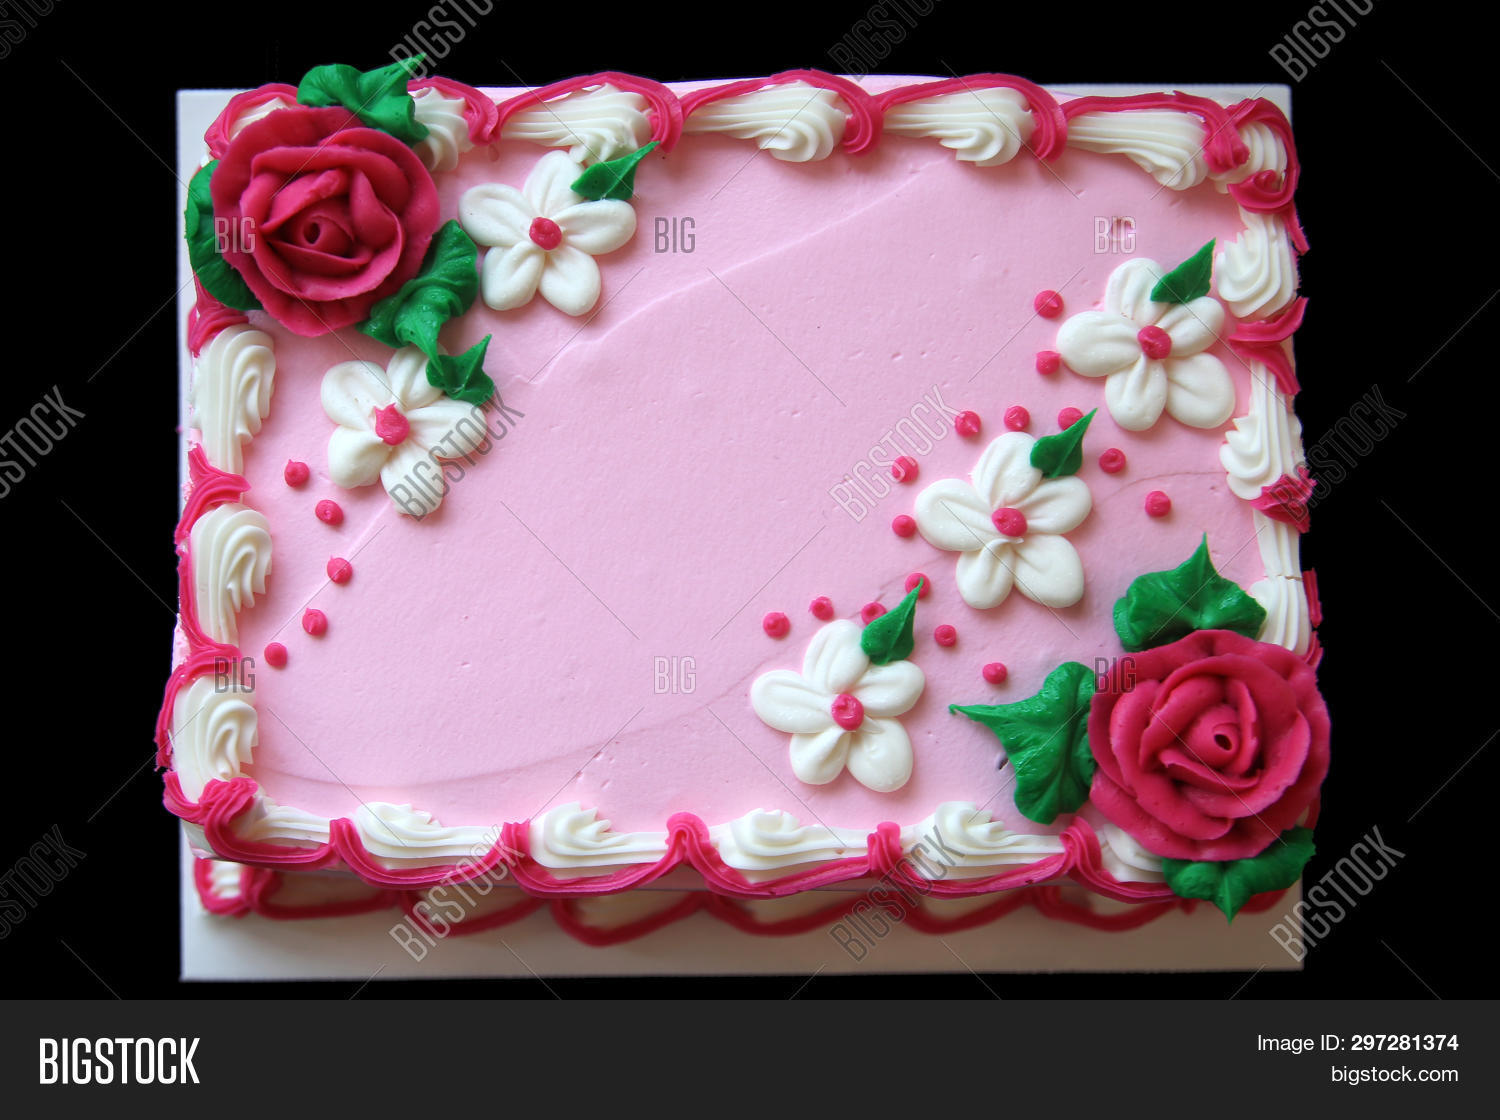 Enjoyable Birthday Cake Pink Image Photo Free Trial Bigstock Personalised Birthday Cards Paralily Jamesorg